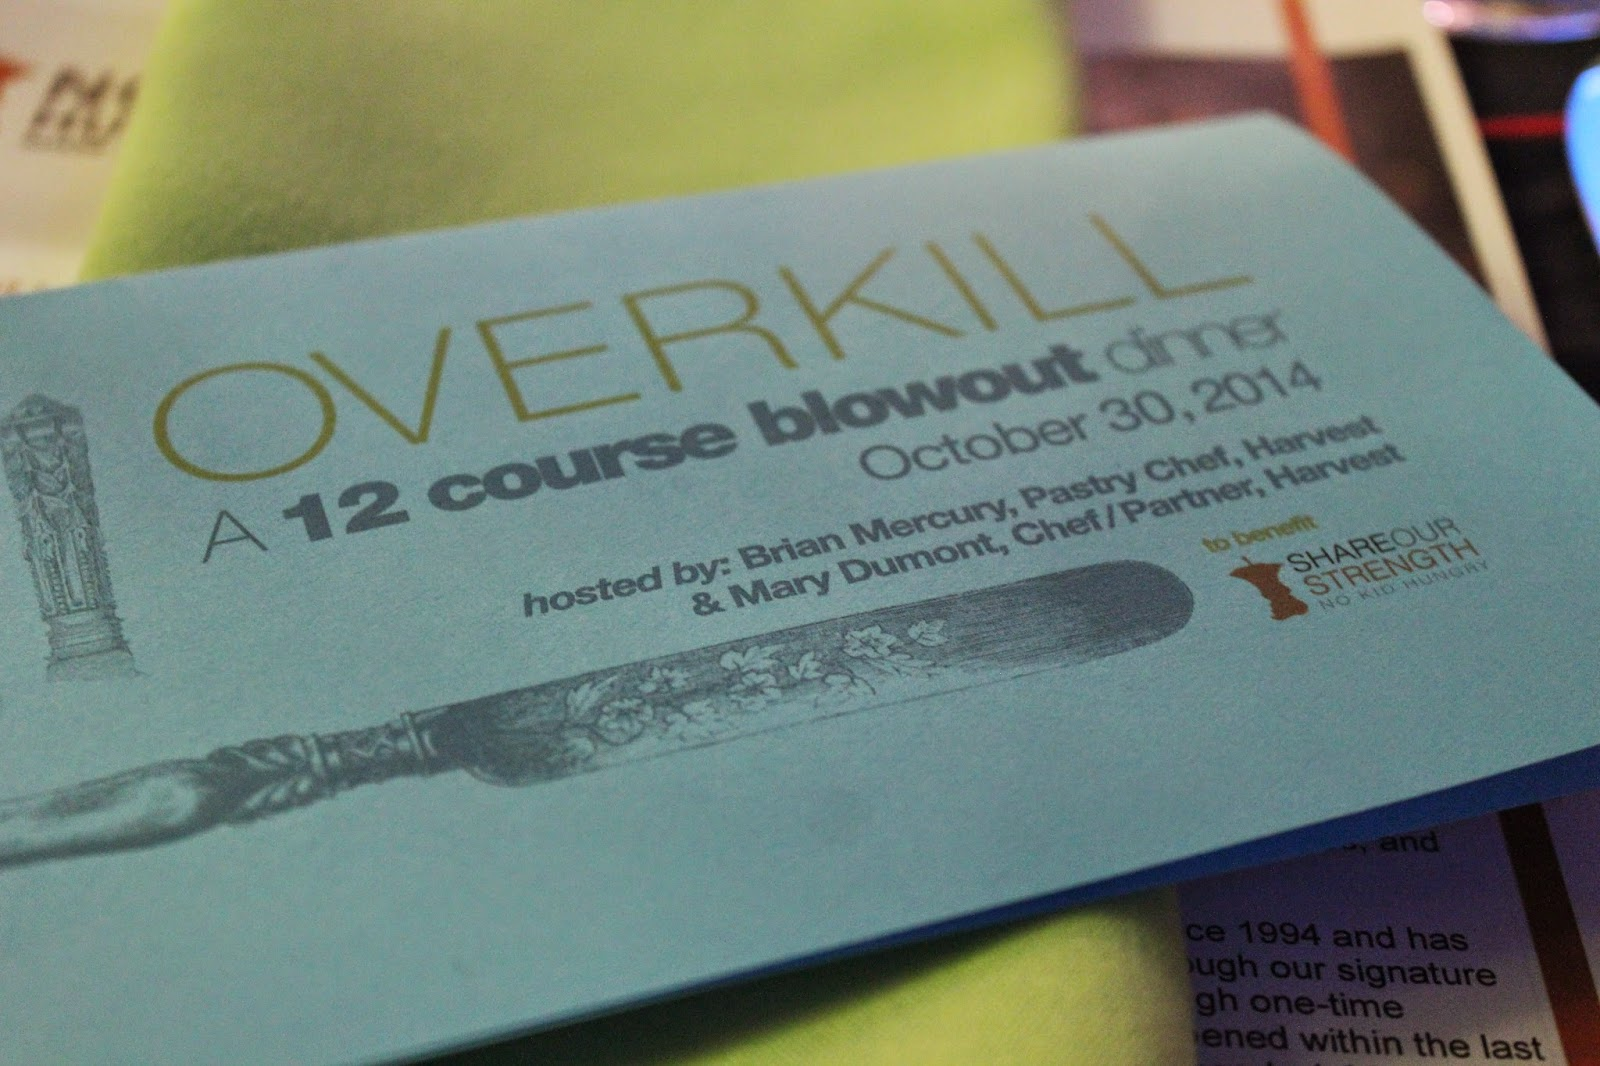 Overkill, a 12-course dinner benefiting No Kid Hungry